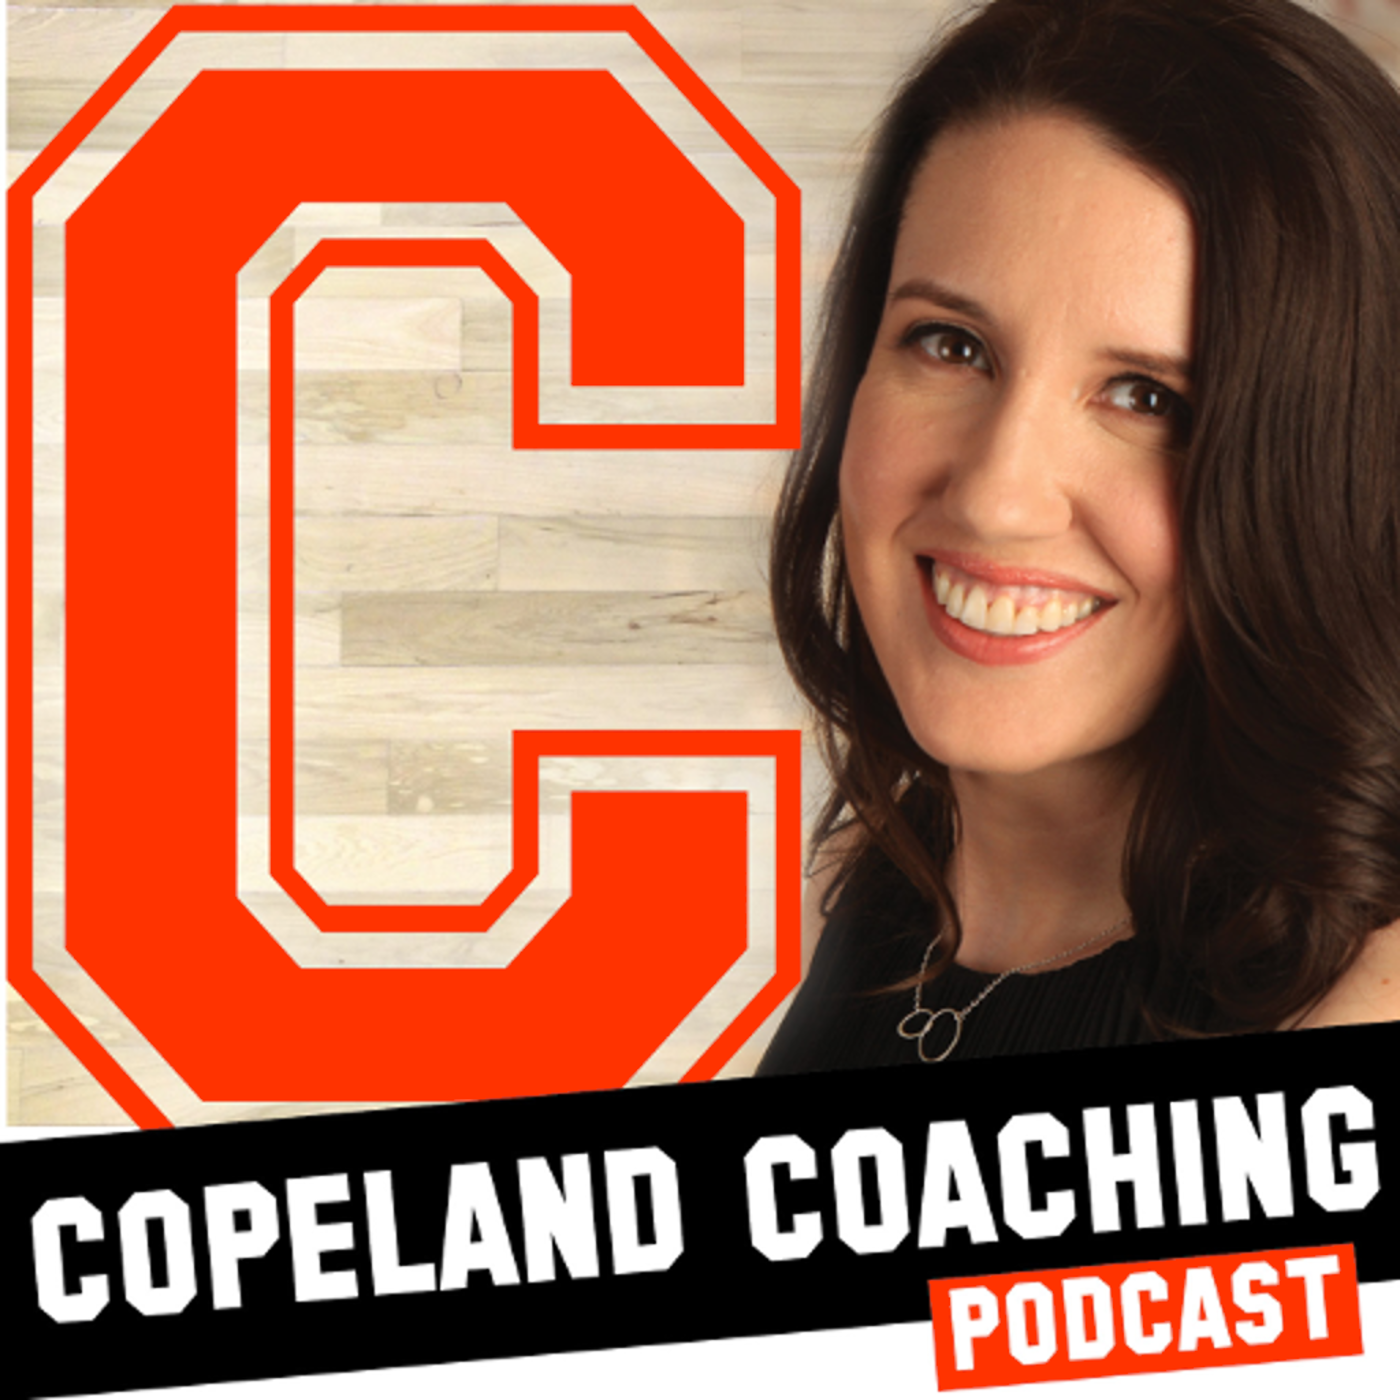 Copeland Coaching Podcast show art